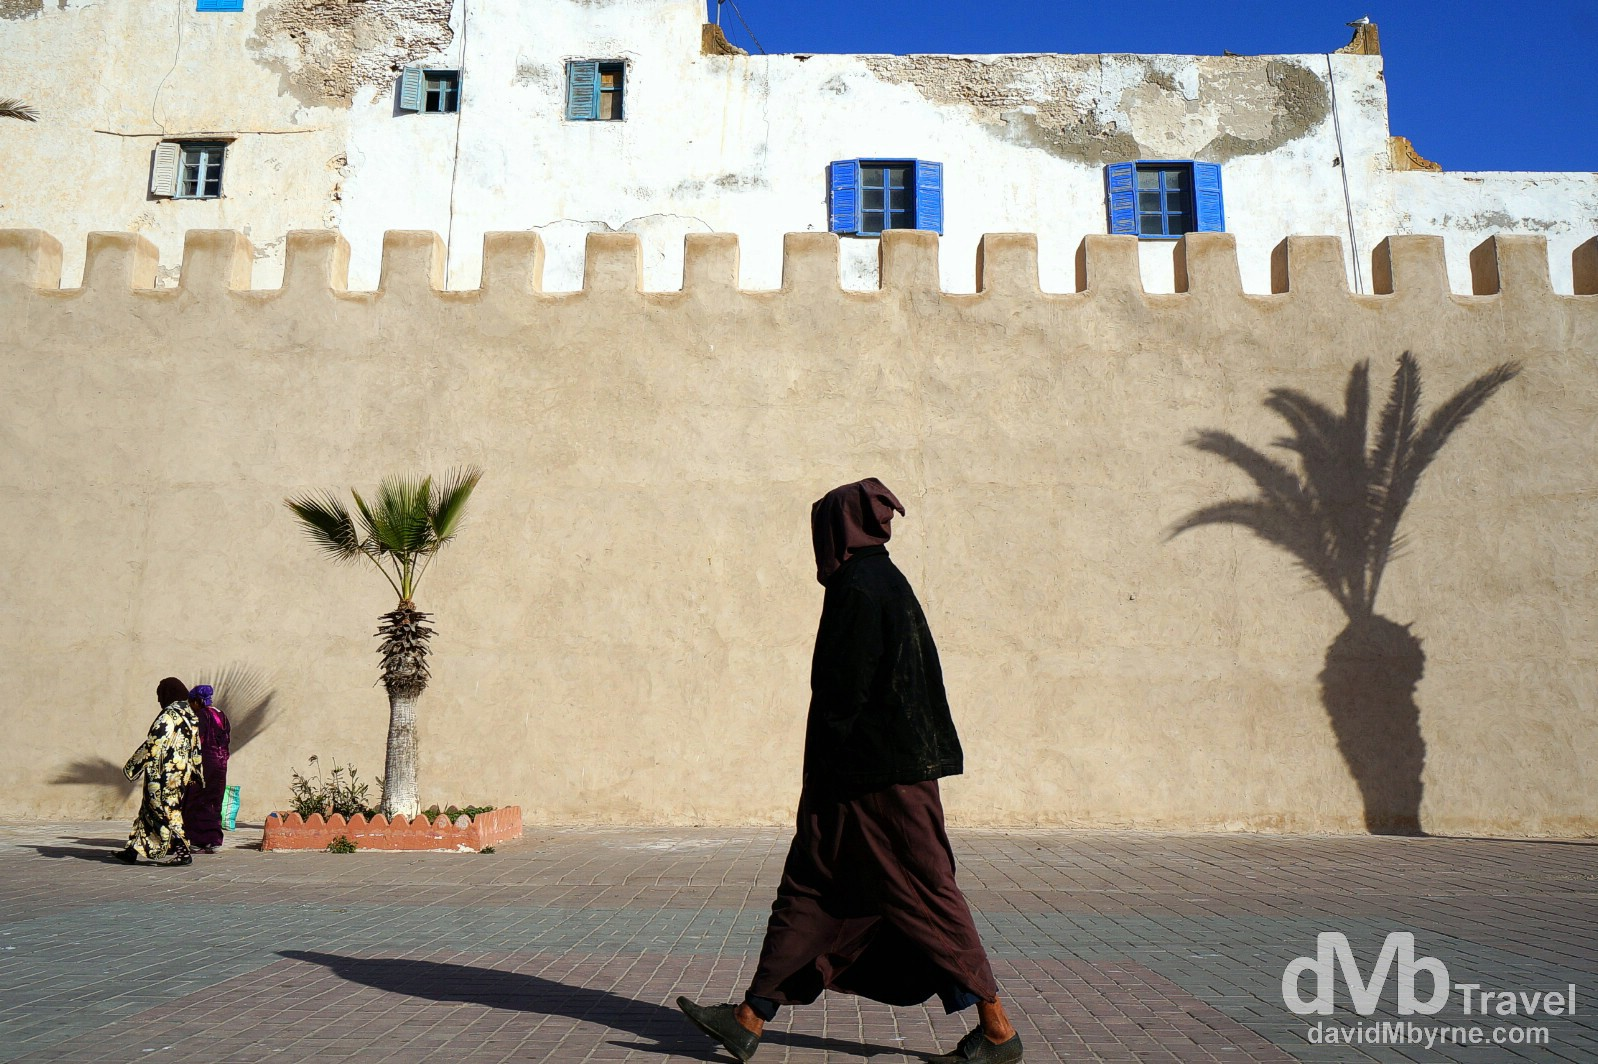 Walking outside the walls of the UNESCO World Heritage listed medina in Essaouira, Morocco. May 3rd, 2014.